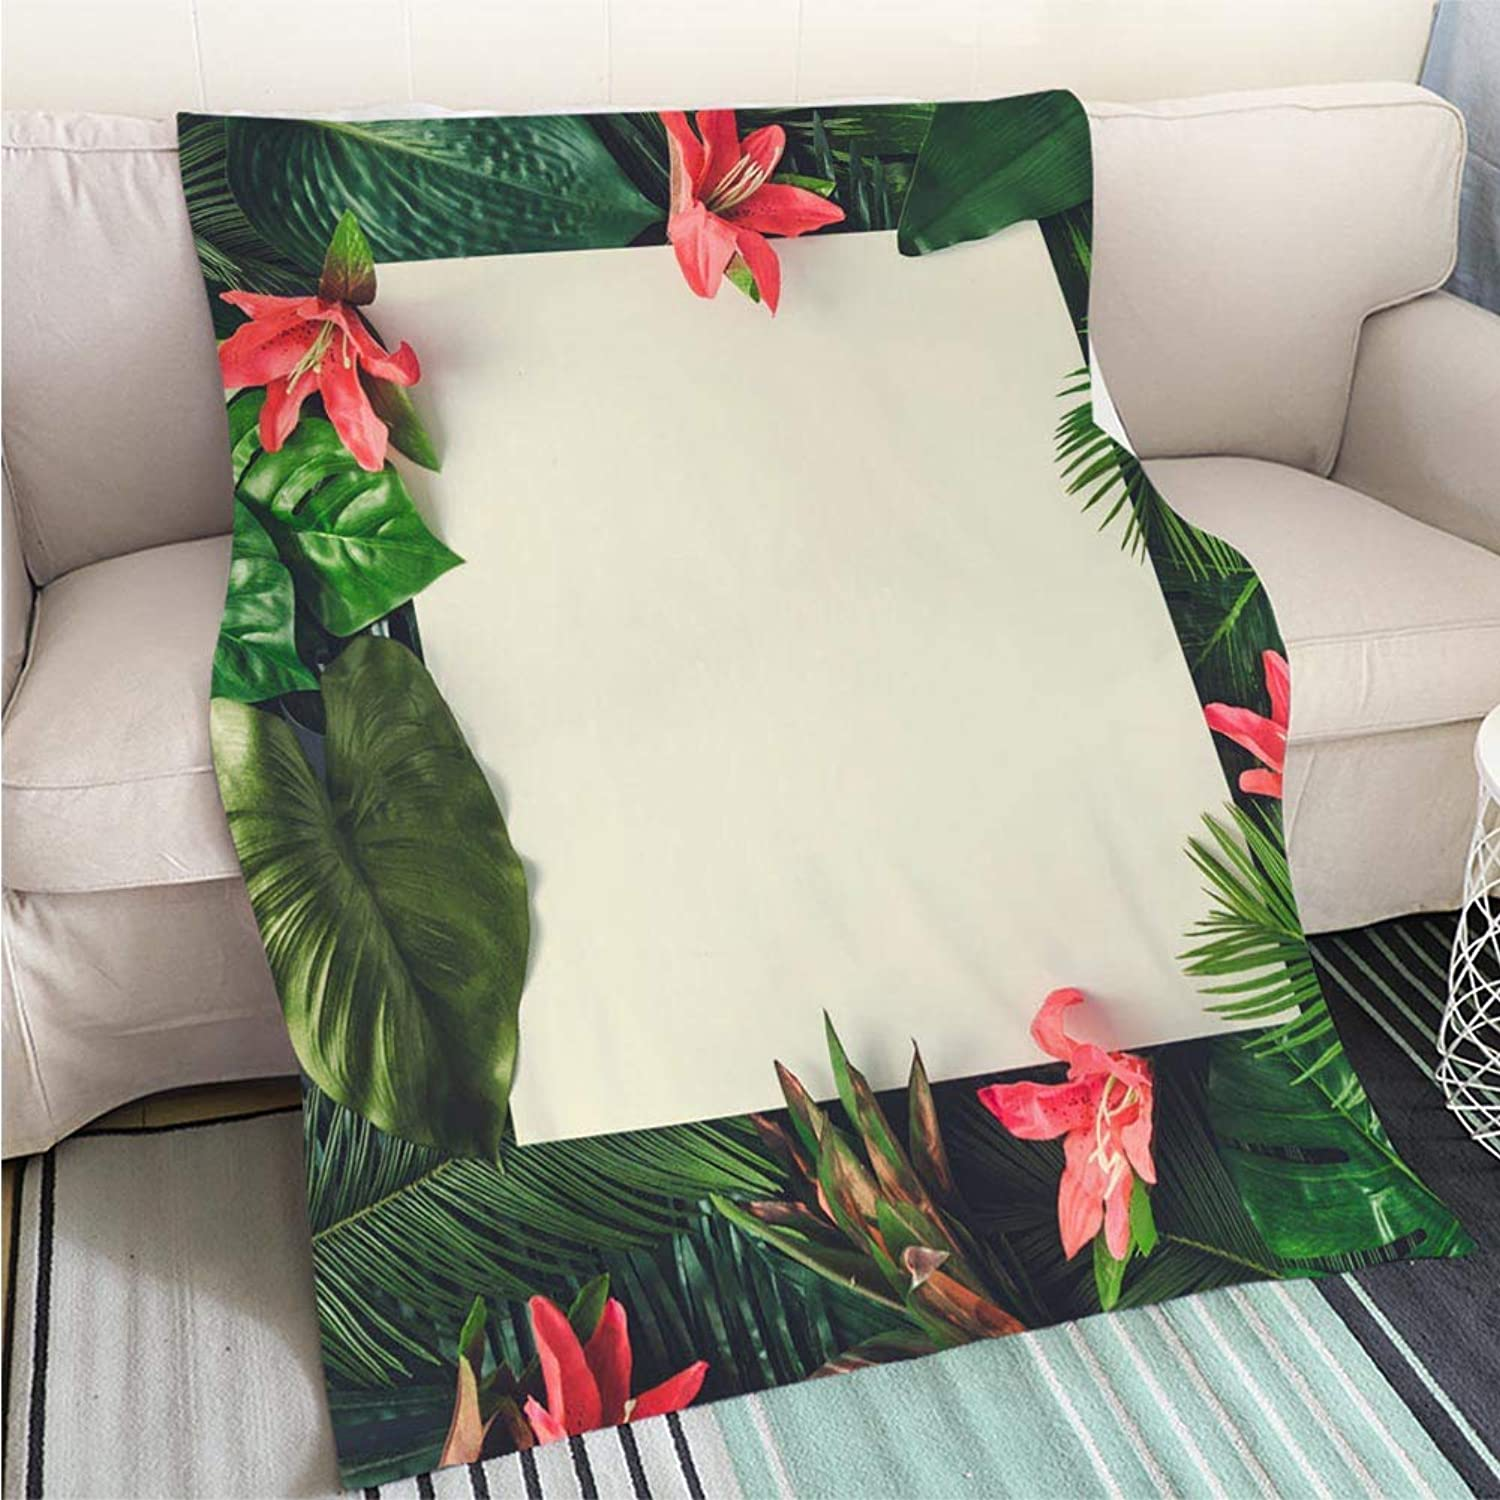 Luxury Super Soft Blanket Creative Nature Layout Made of Tropical Leaves and Flowers with Paper Card Note Flat Lay Summer Concept Perfect for Couch Sofa or Bed Cool Quilt